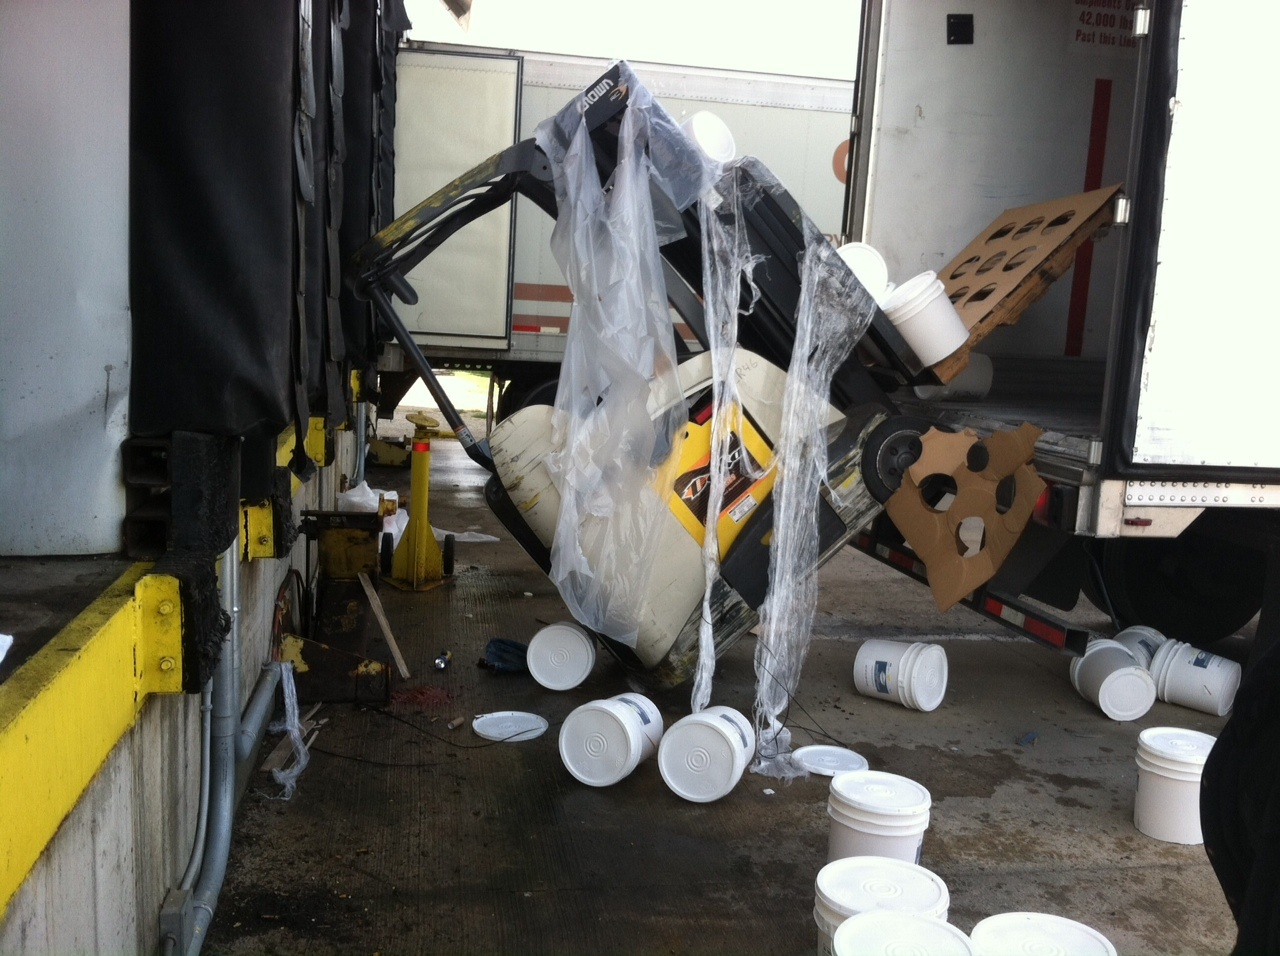 forklift warehouse dock accidents